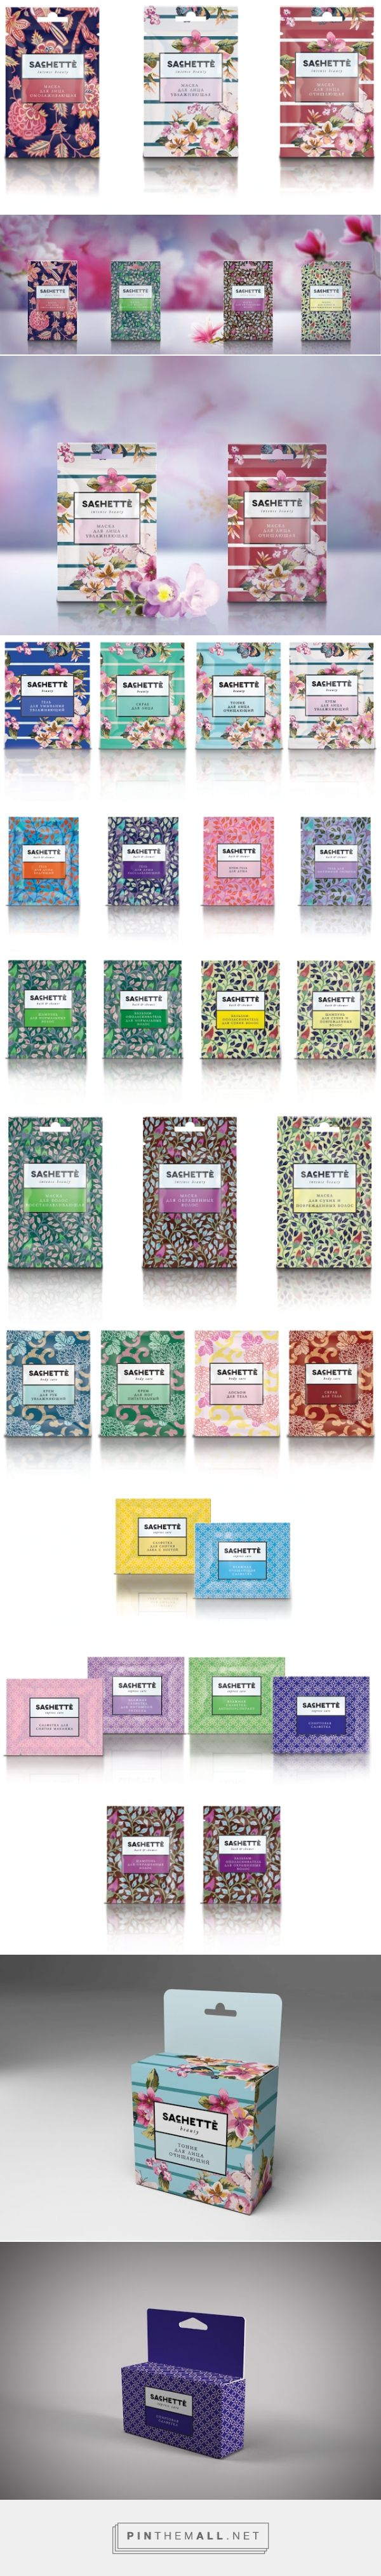 SACHETTE  / selected collection of cosmetics. So pretty and so popular PD